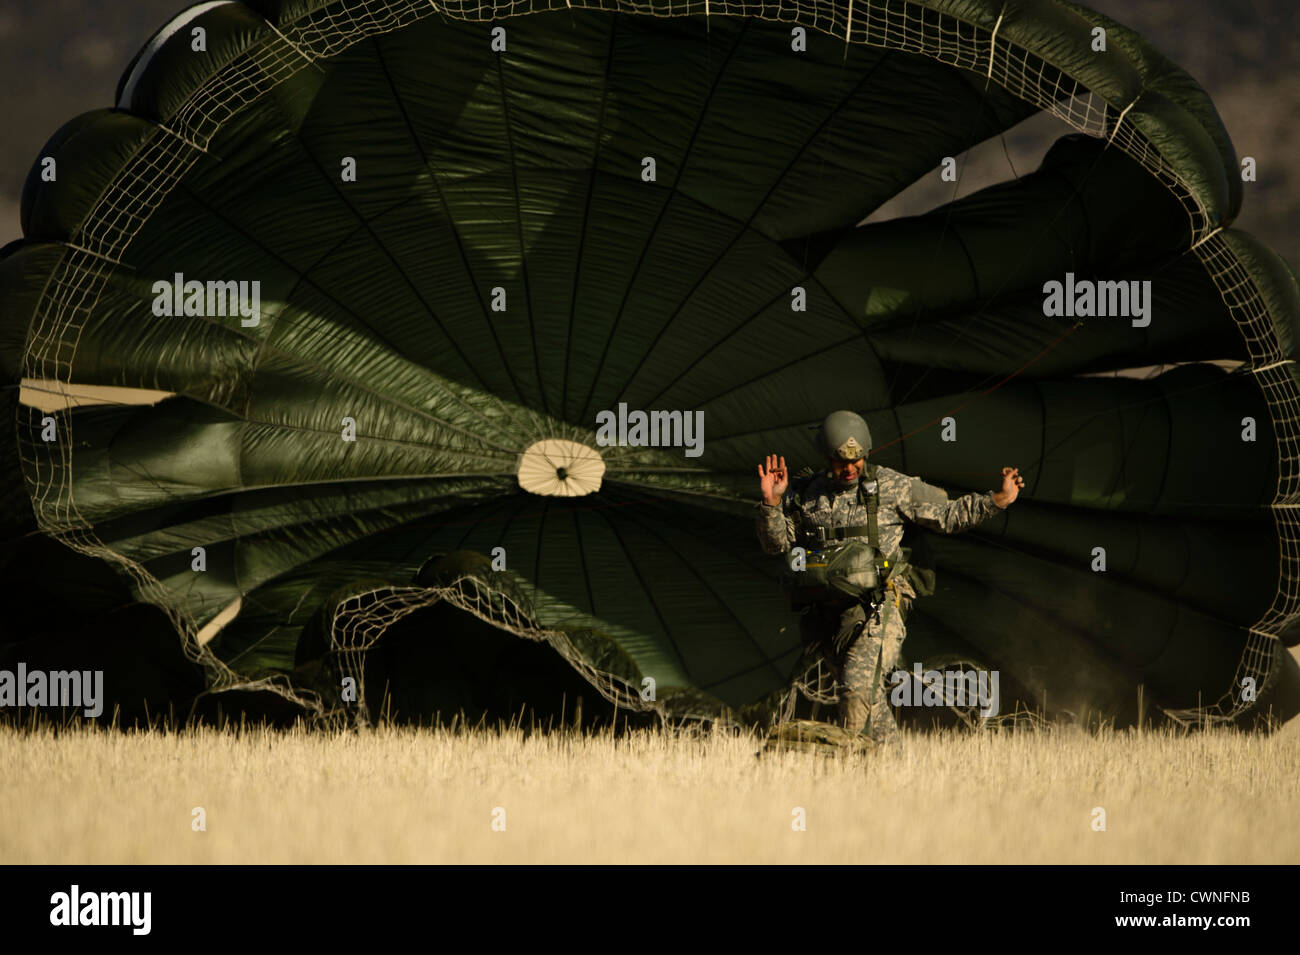 A US Army soldier from the Utah National Guard prepares to pack his parachute after a static line jump March 15, 2012 in Fairfield, Utah. Stock Photo